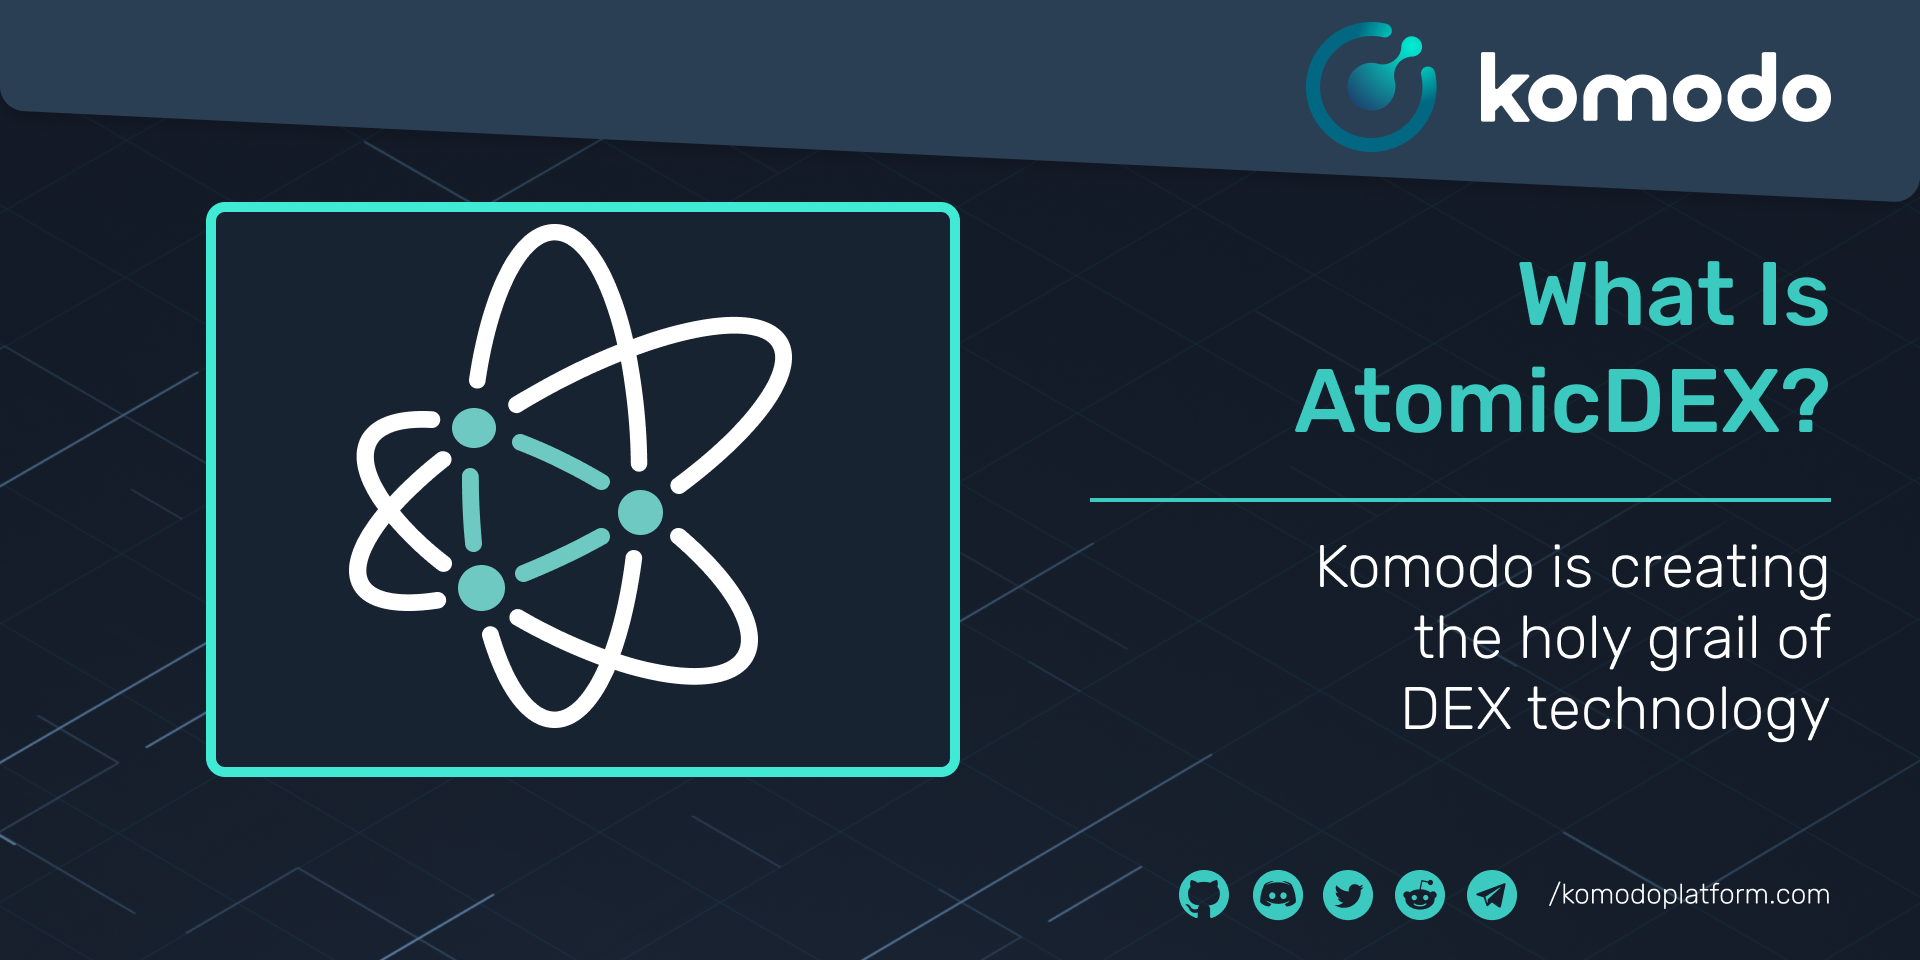 What Is AtomicDEX?